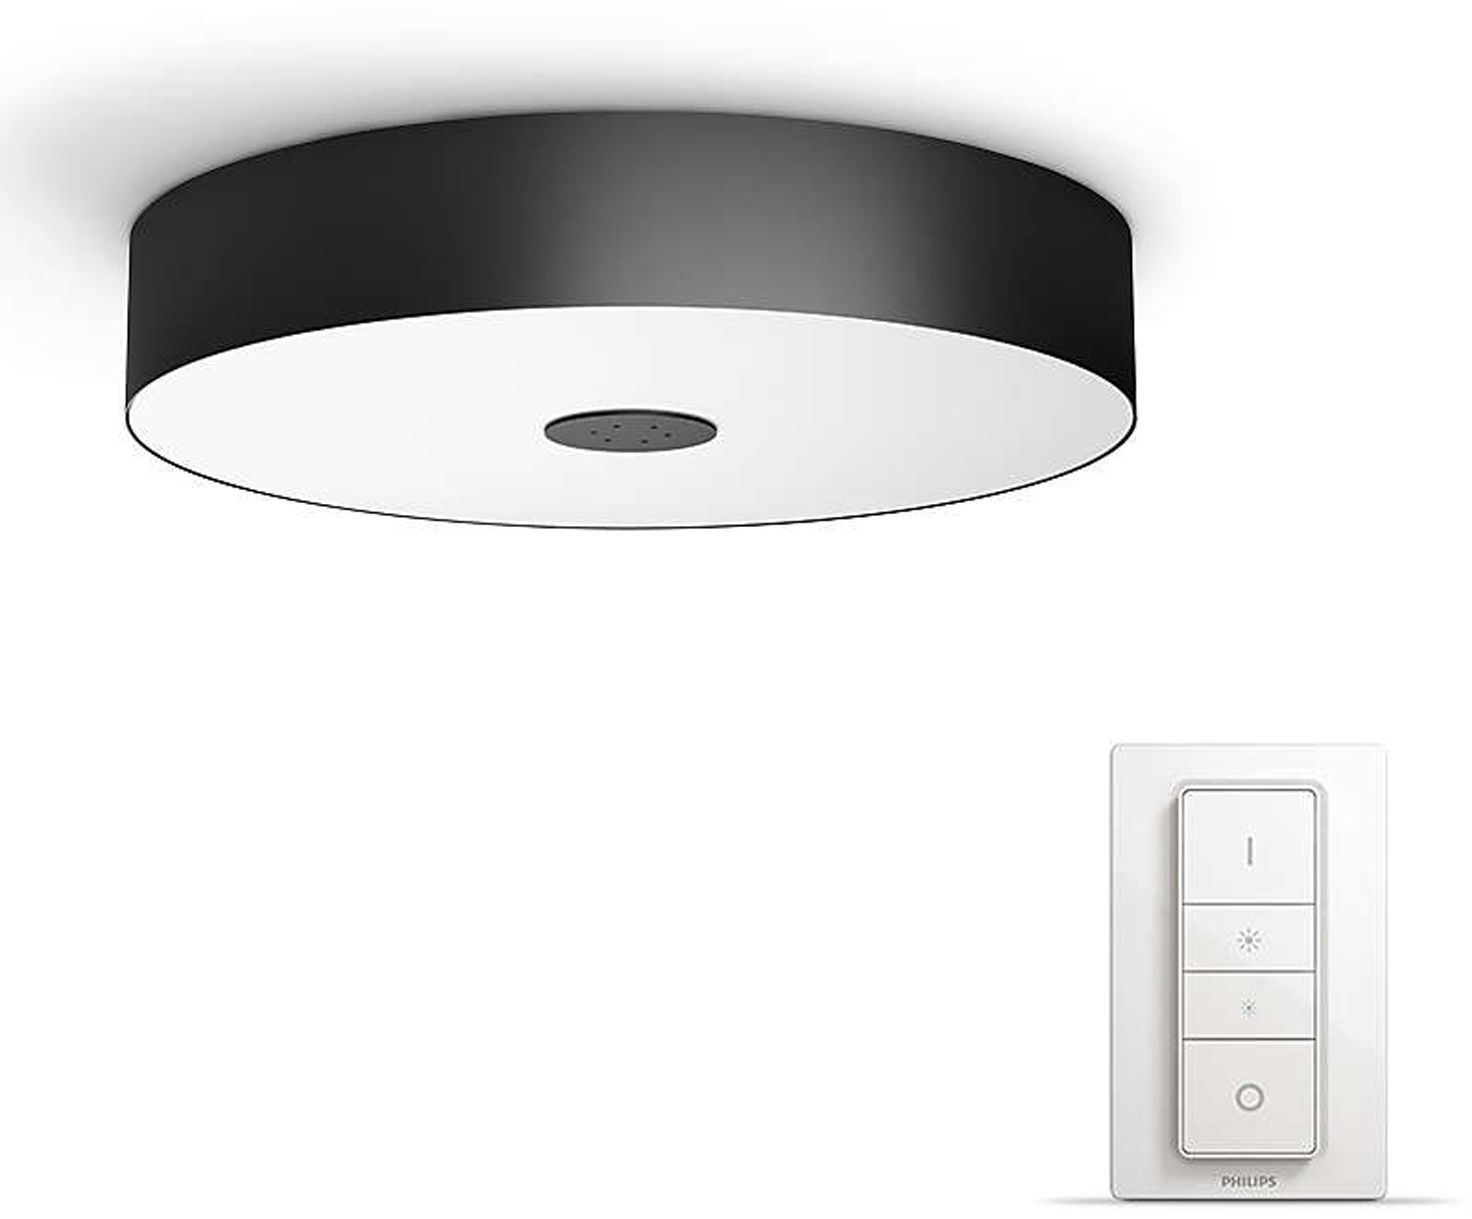 Philips Hue Fair Plafond - svart